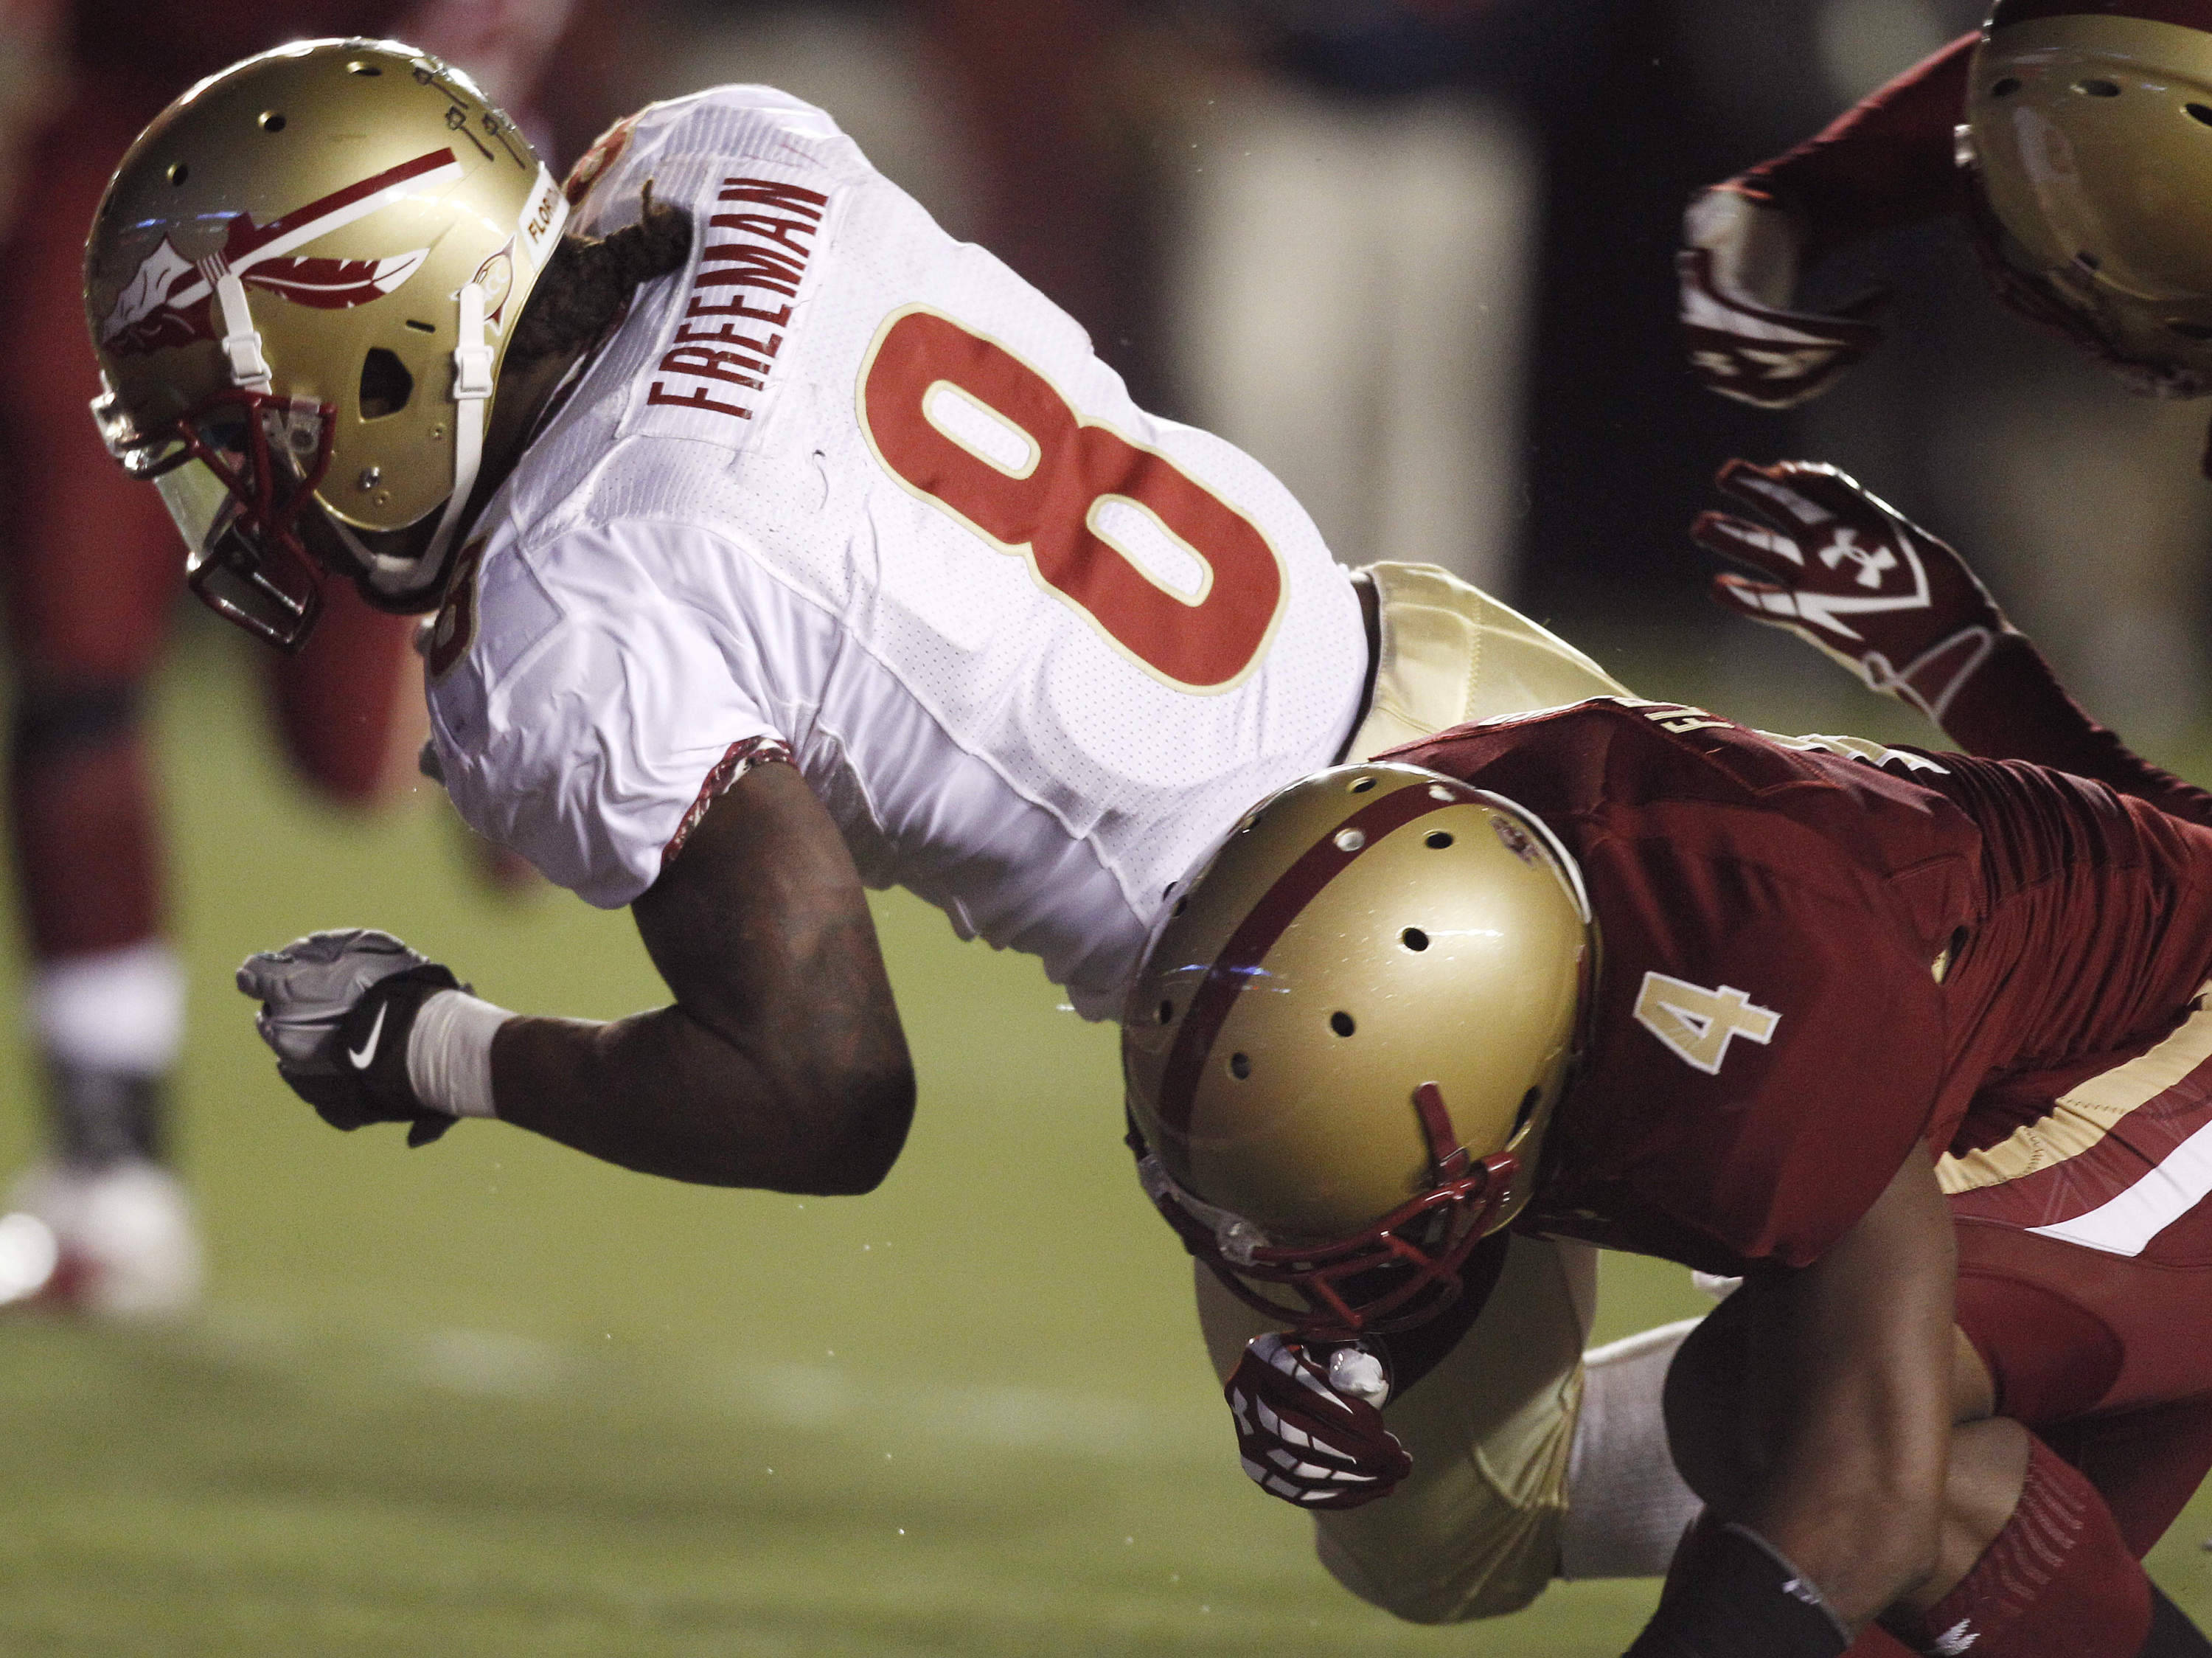 Florida State running back Devonta Freeman (8) gets past Boston College cornerback Donnie Fletcher (4) as he crosses the goal line for a touchdown during the first half. (AP Photo/Charles Krupa)